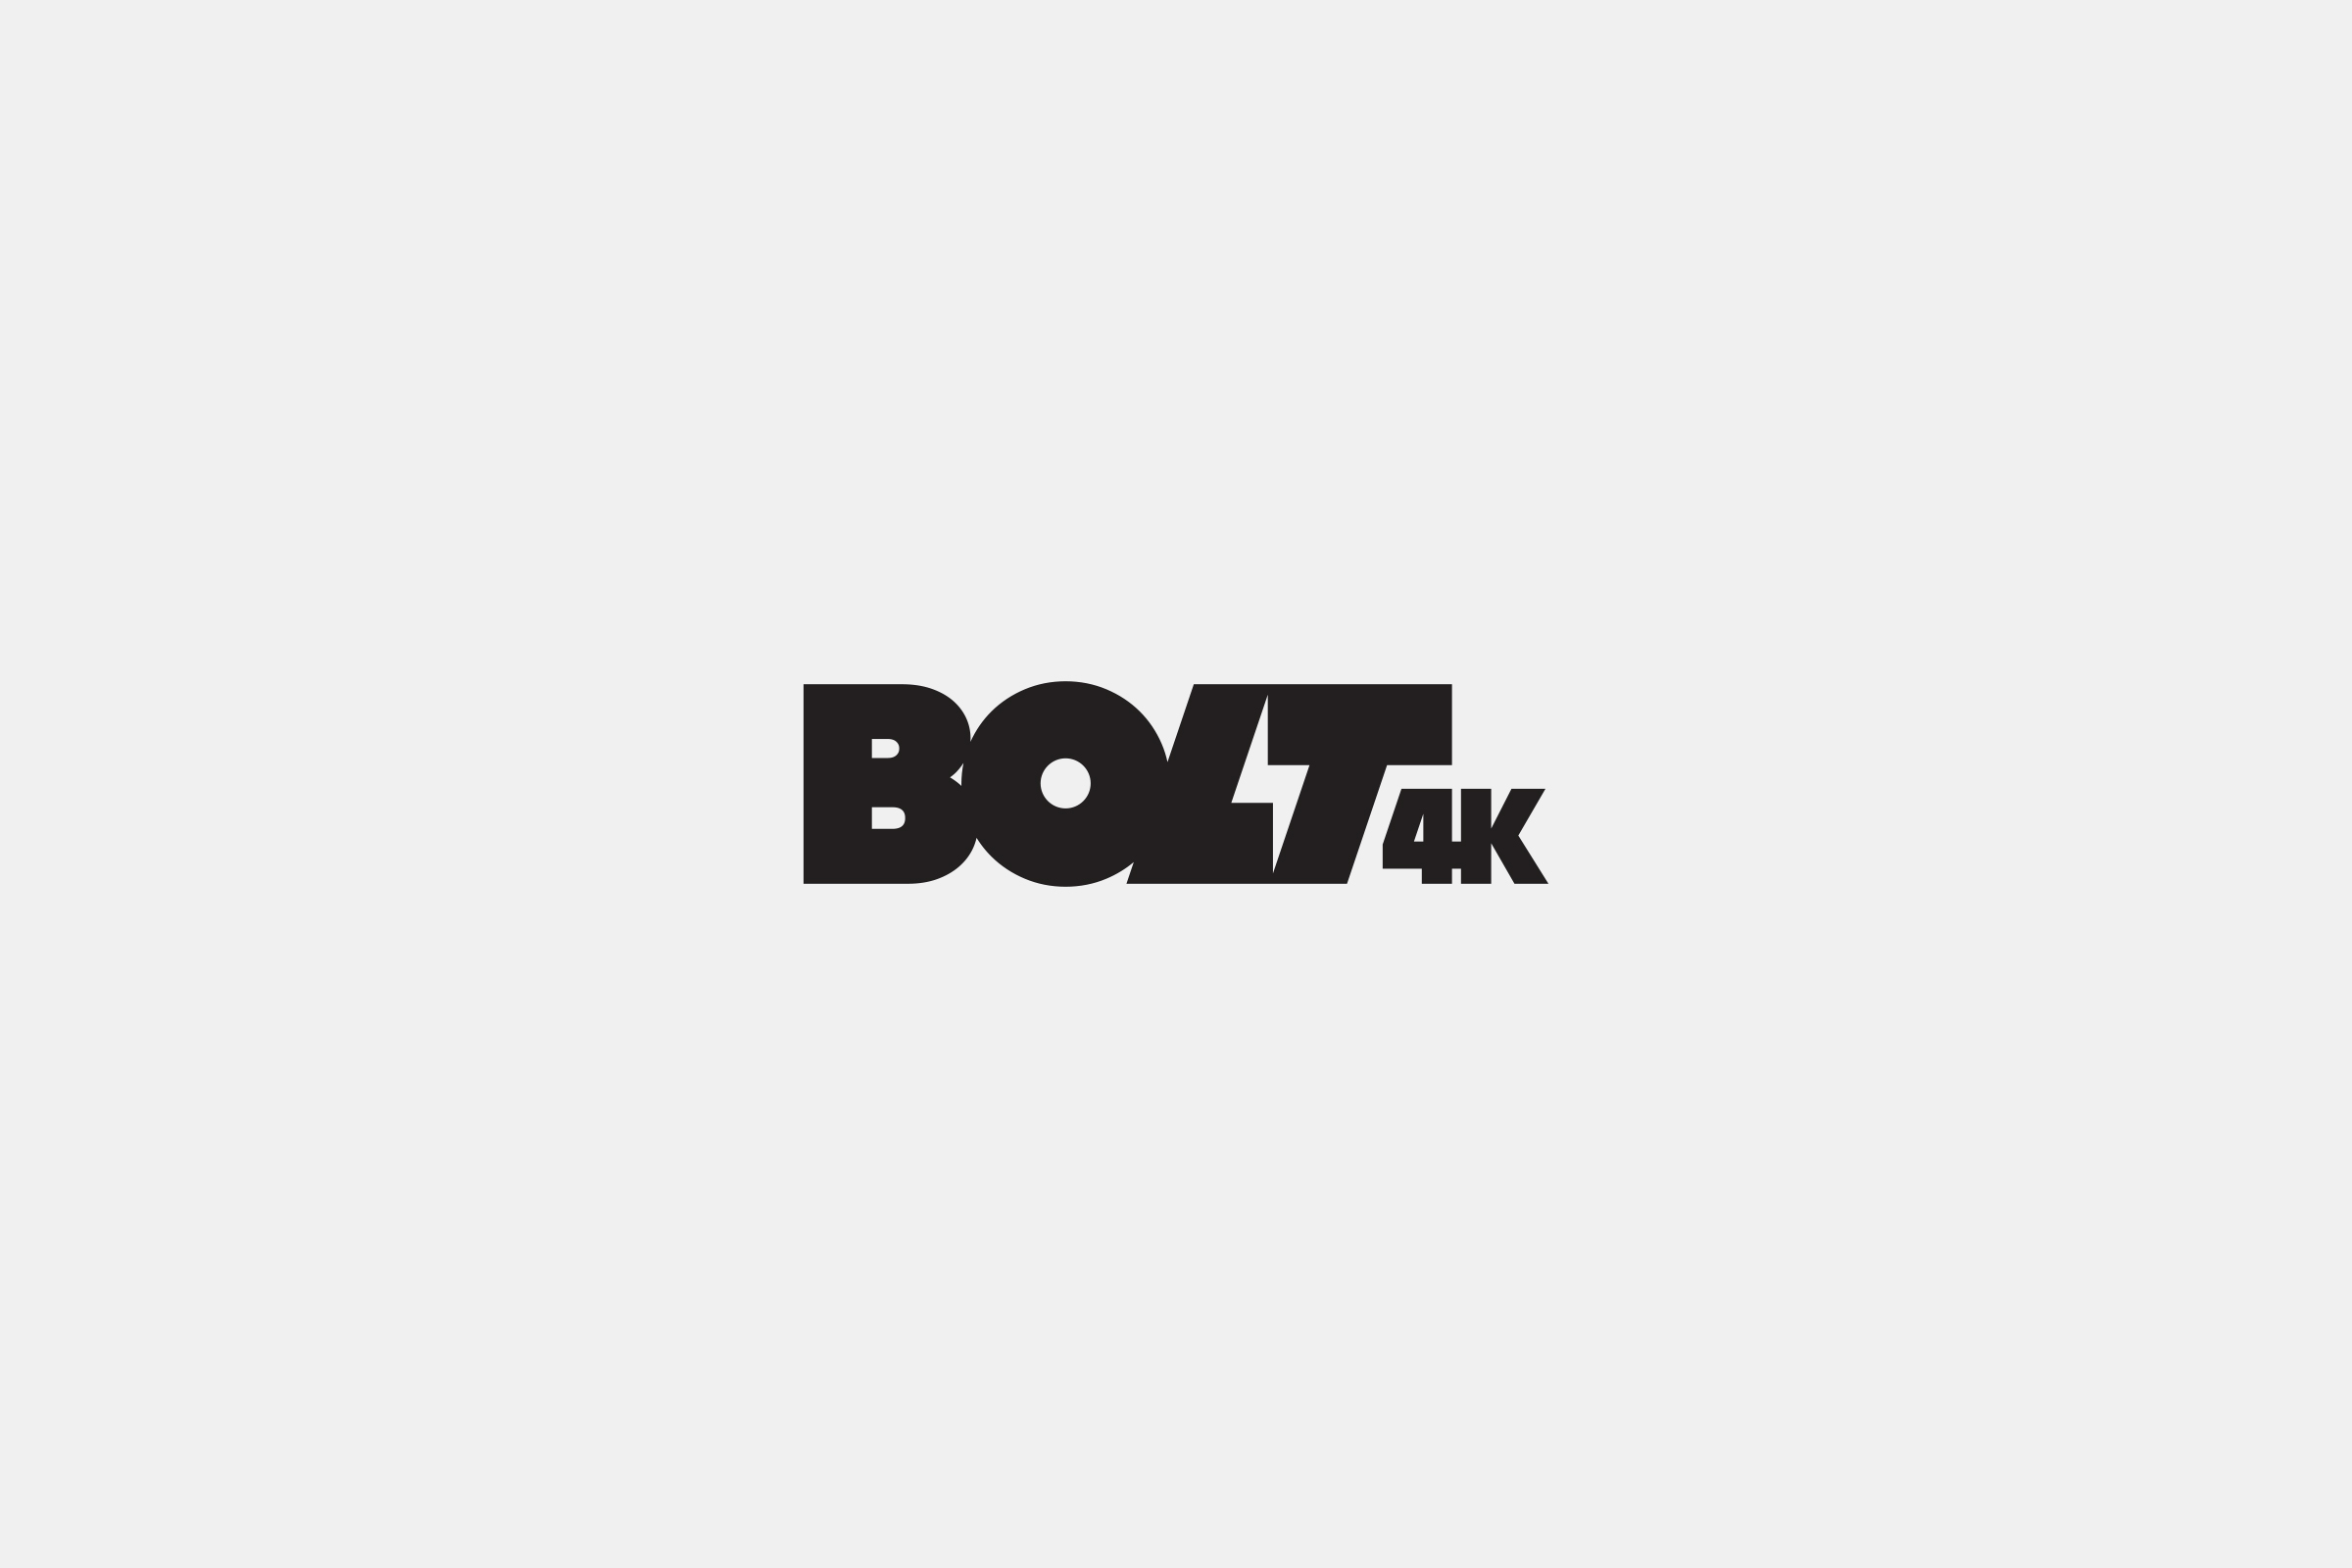 TBS_Bolt4K_Logo_1